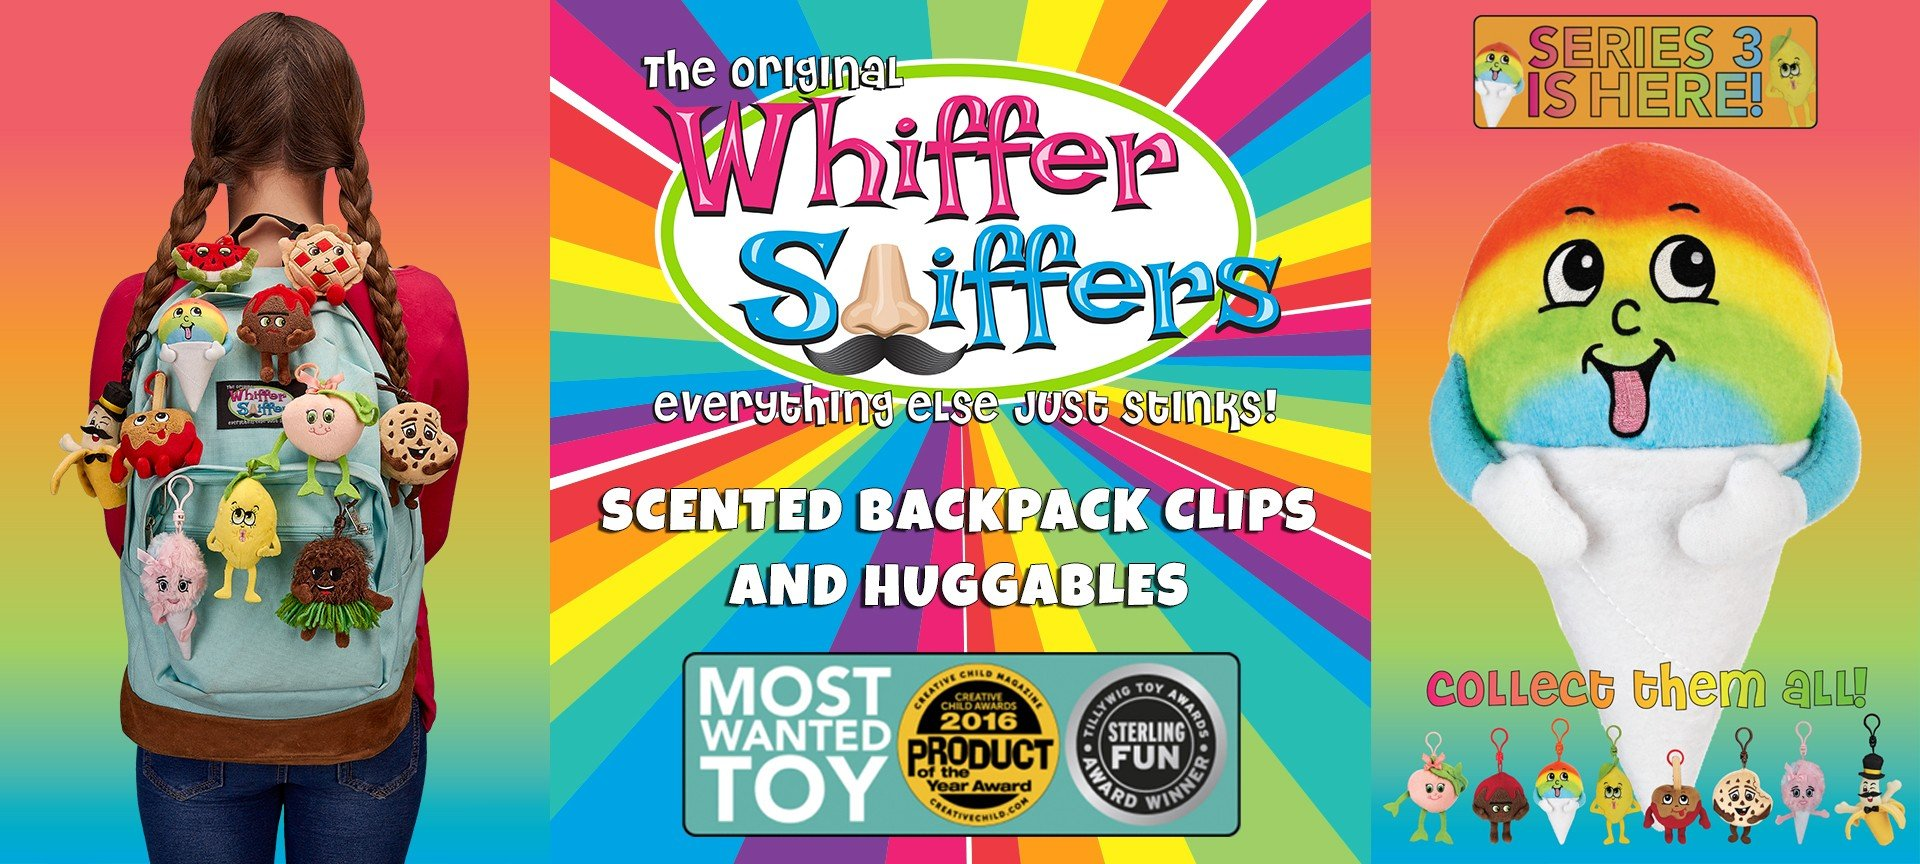 Whiffer Sniffer Backpack Clips Banner